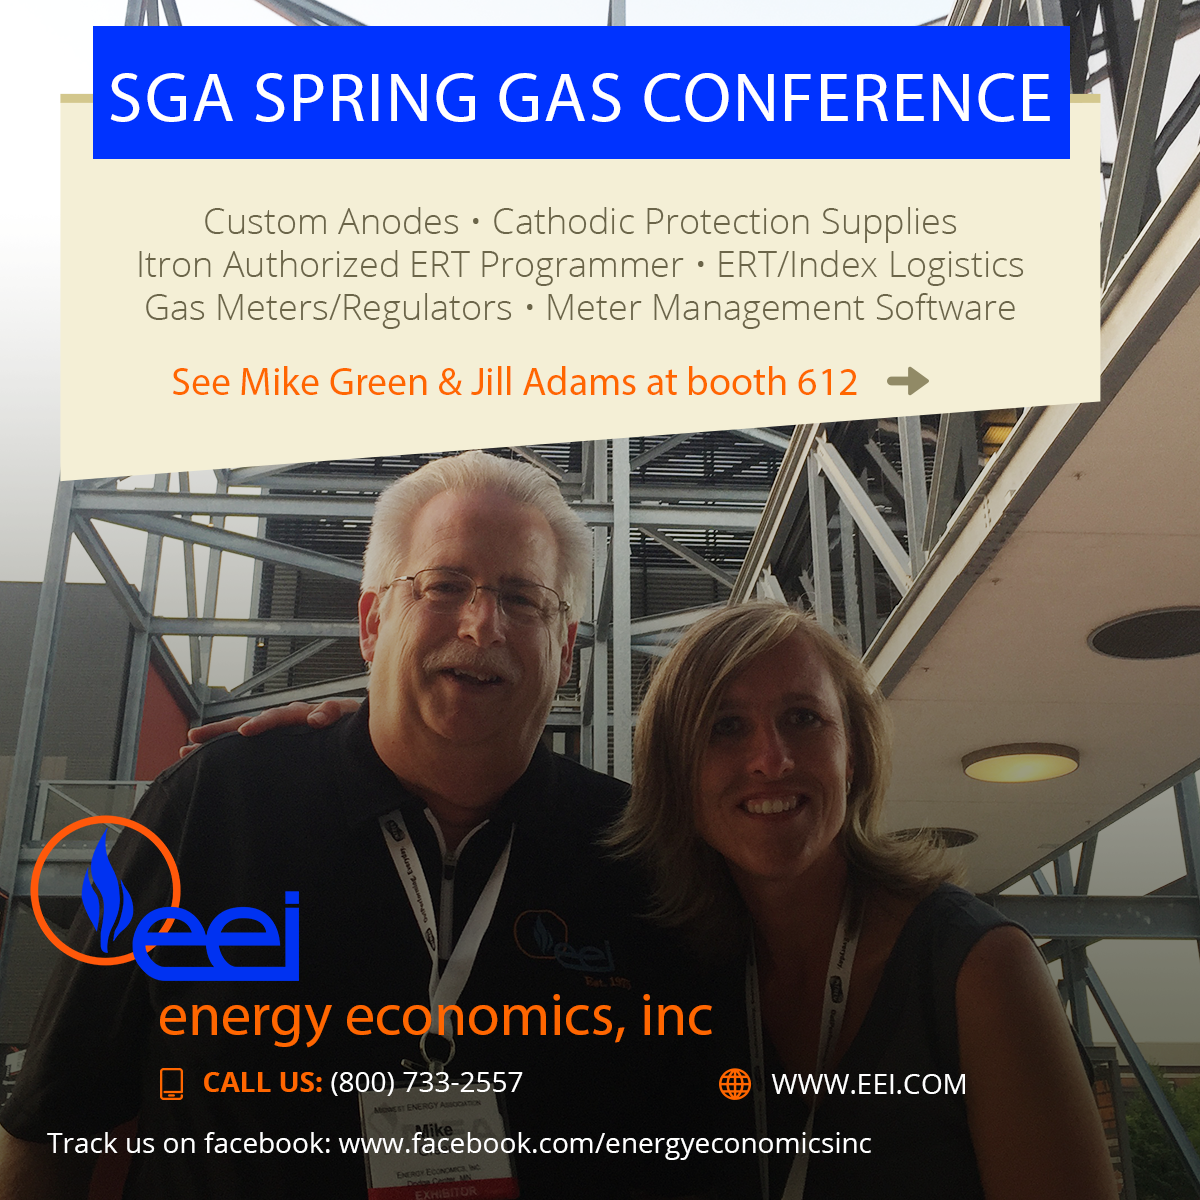 SGA Spring Gas Conference & Expo  Energy Economics, Inc.